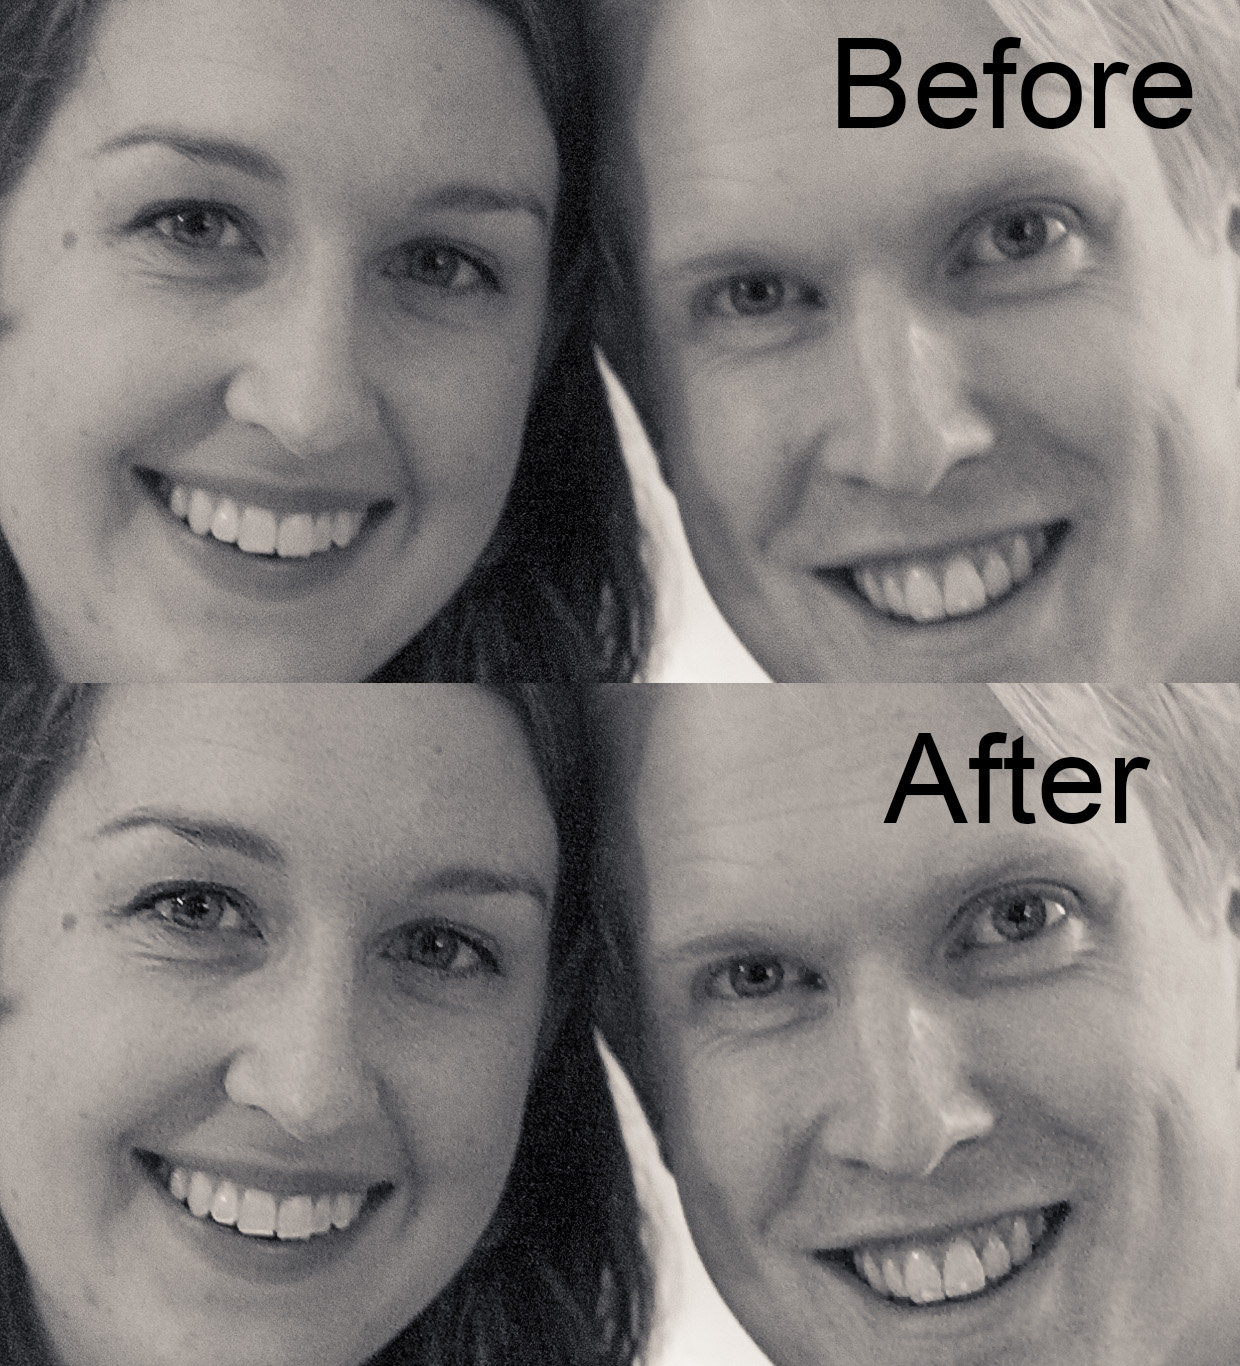 hjorthmedh-shake-reduction-before-after